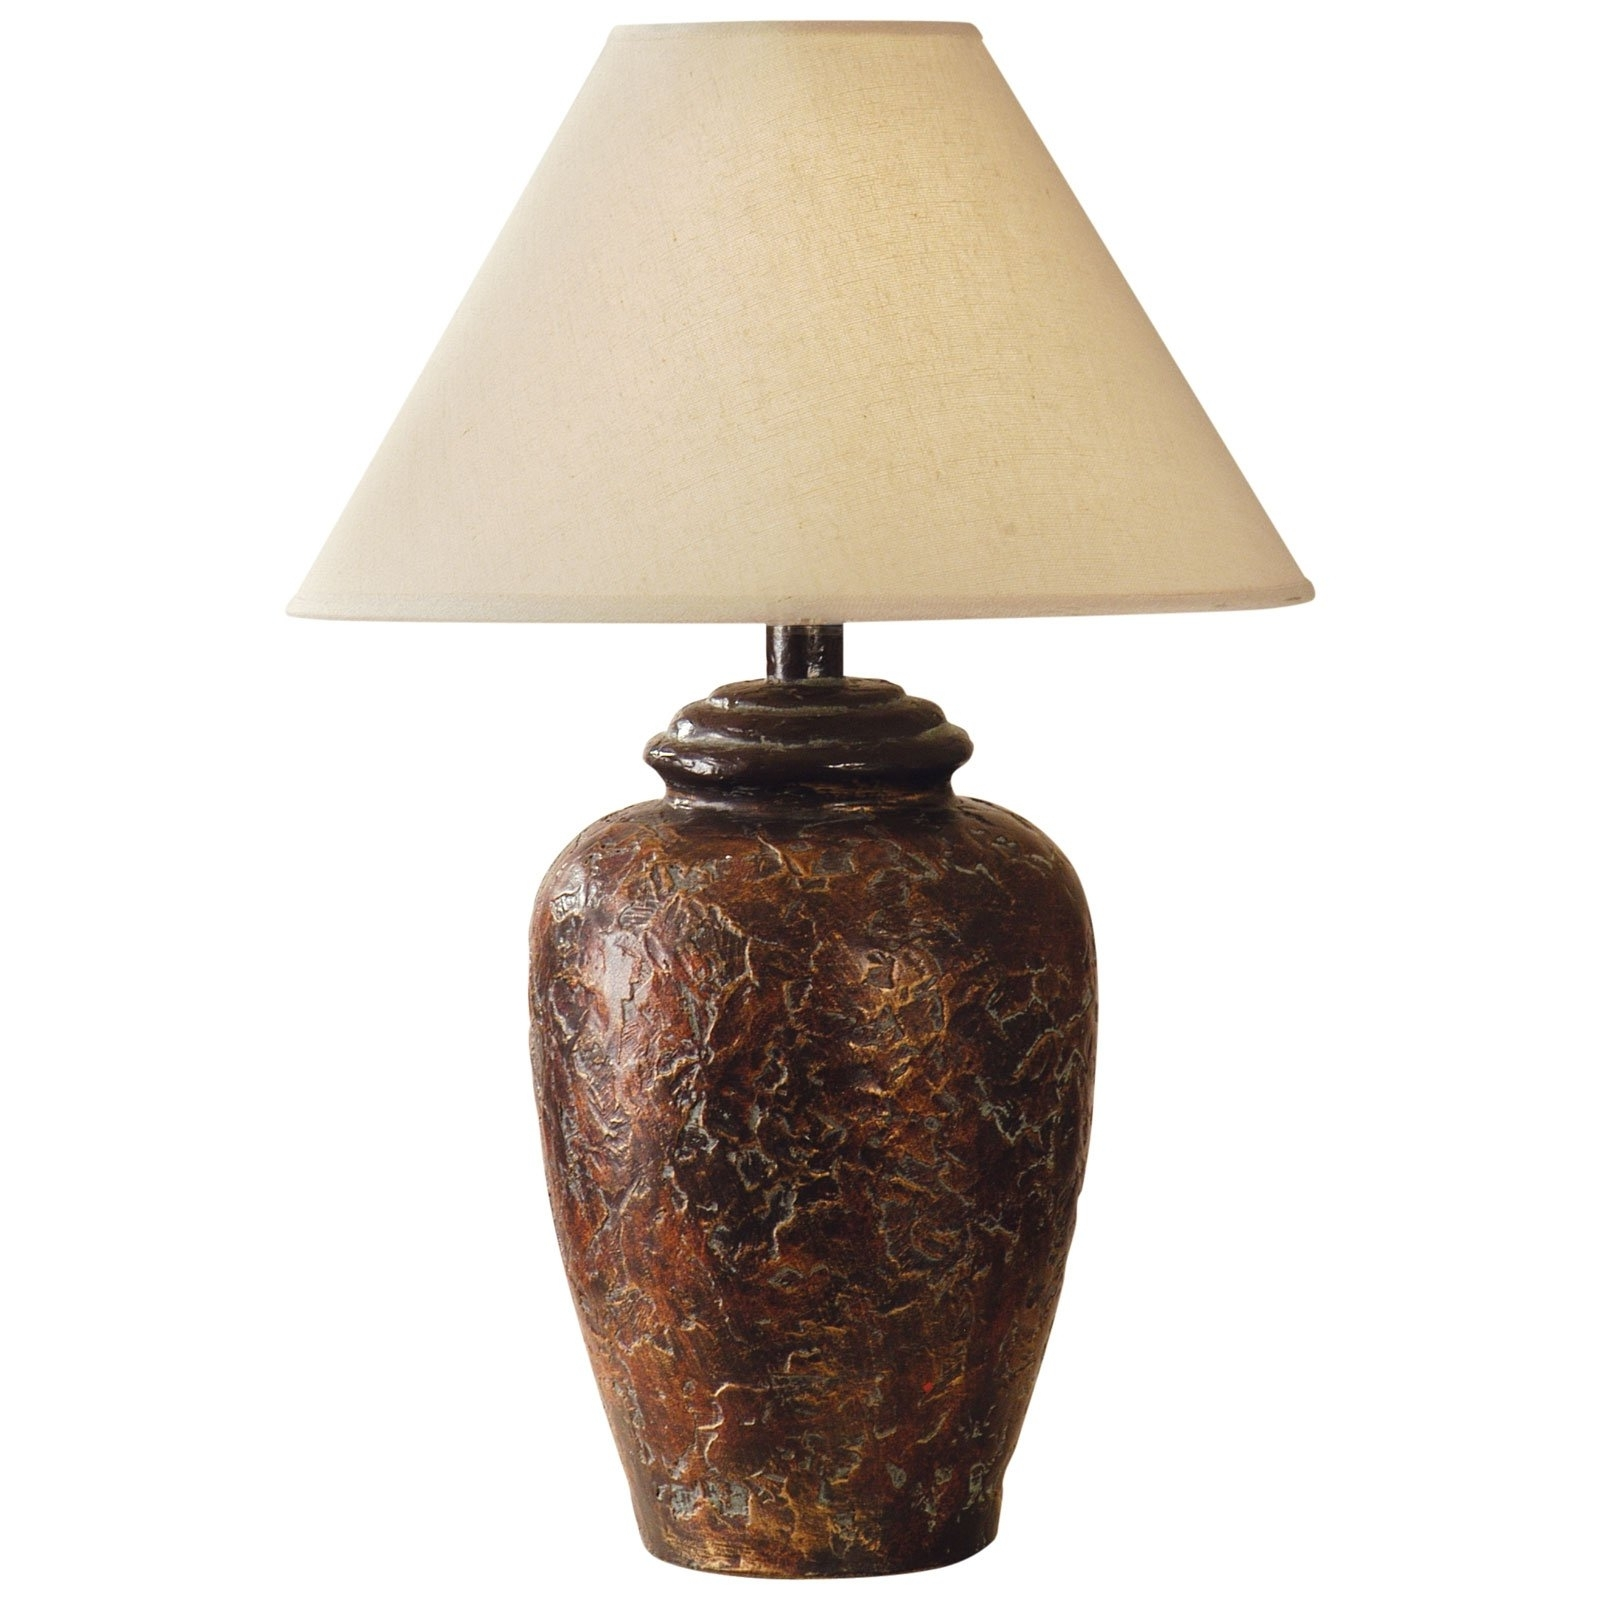 Famous Furniture : Traditional Table Lamps Oregonuforeview Home Furniture Within Traditional Table Lamps For Living Room (View 3 of 15)